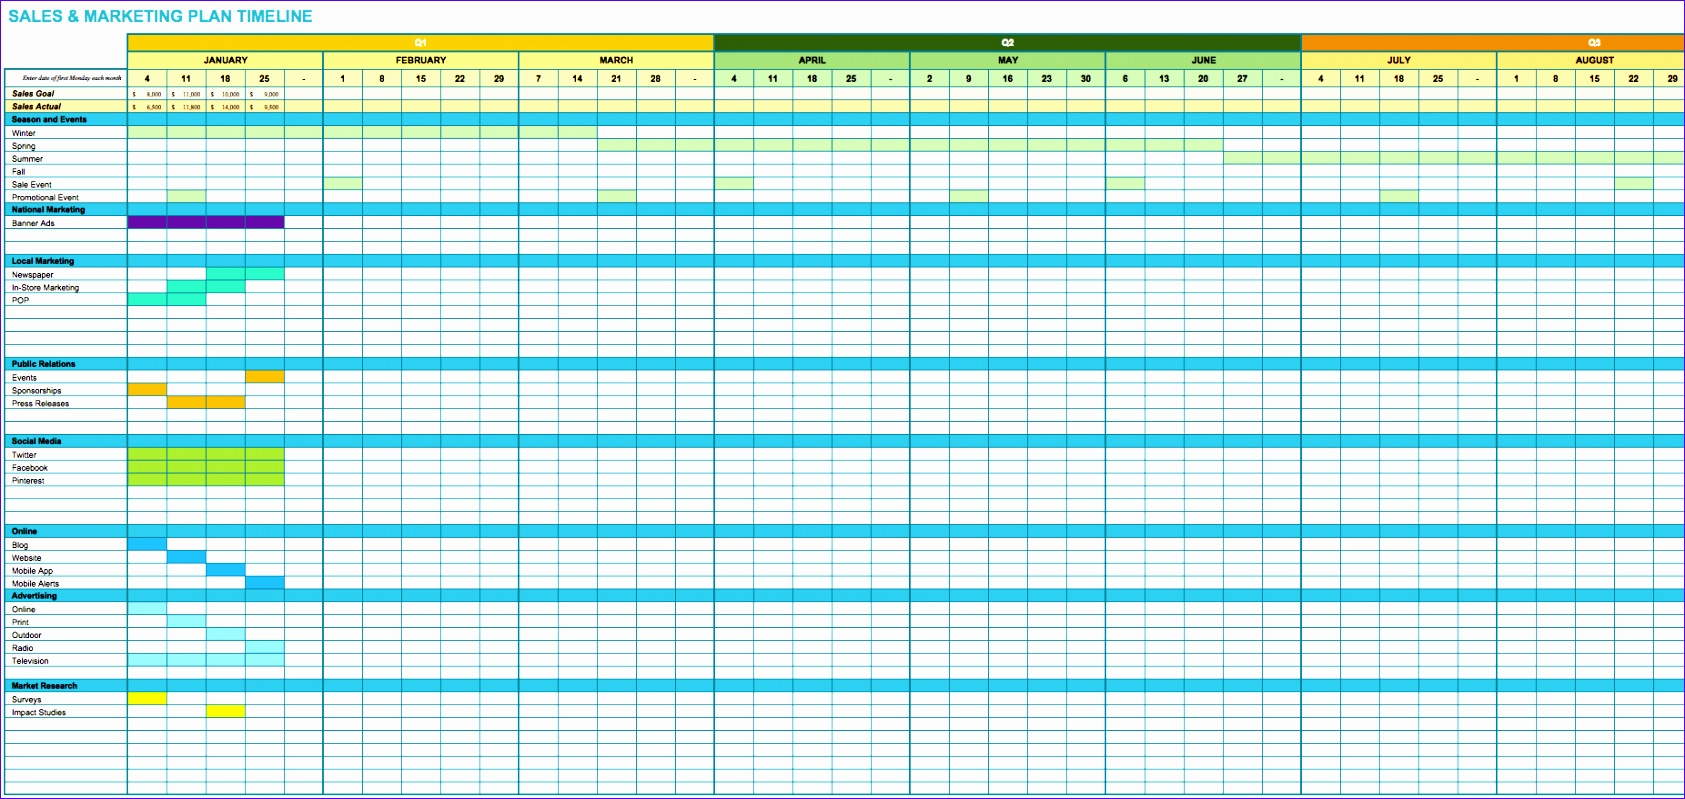 8 excel bookkeeping templates free exceltemplates exceltemplates time management spreadsheet template managementexcel bookkeeping templates free marketing spreadsheet template 1685799 alramifo Image collections